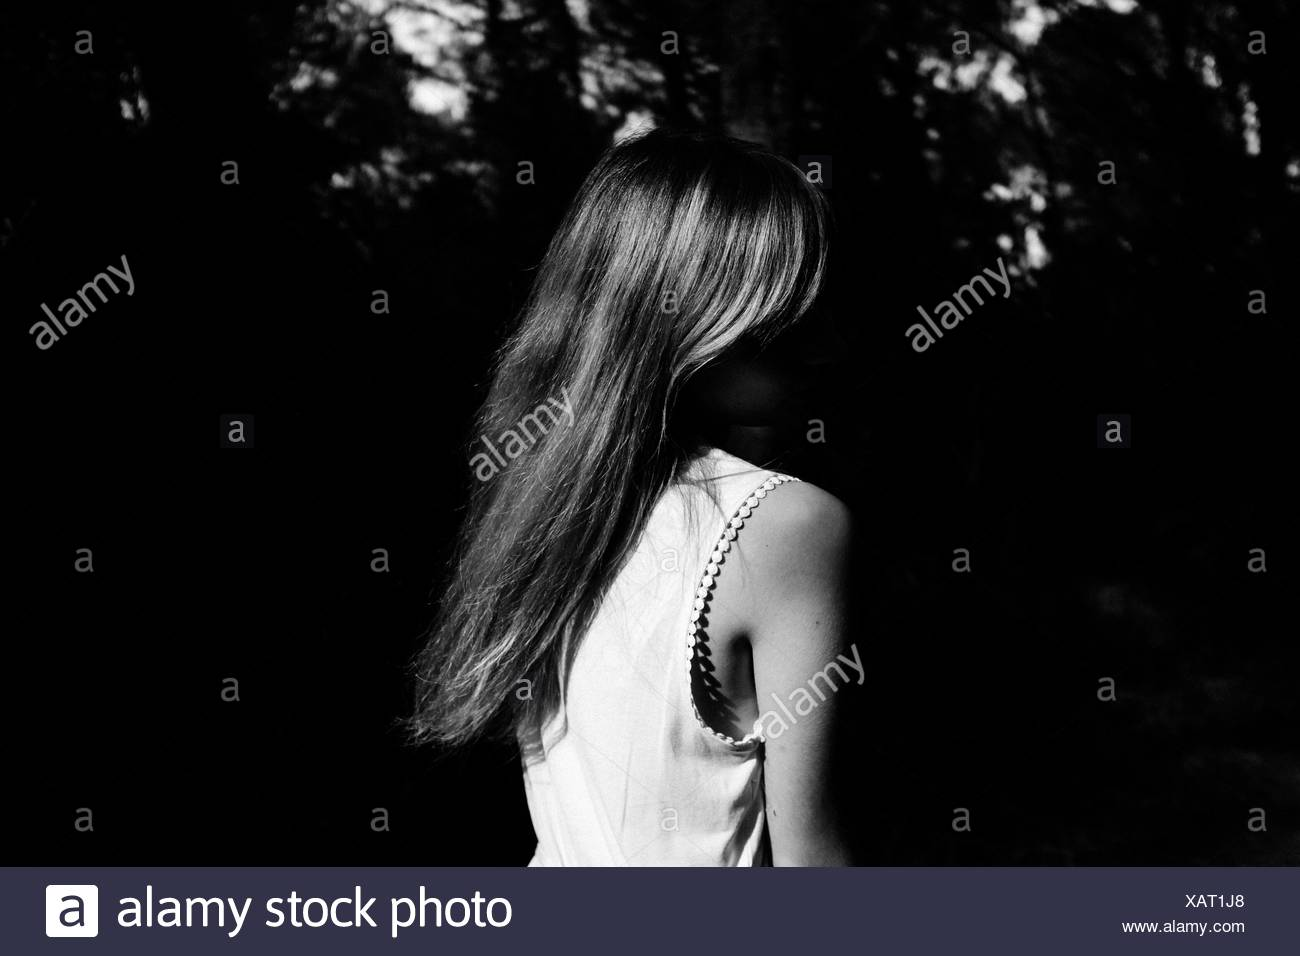 Rear View Of A Woman Against Dark Plants - Stock Image